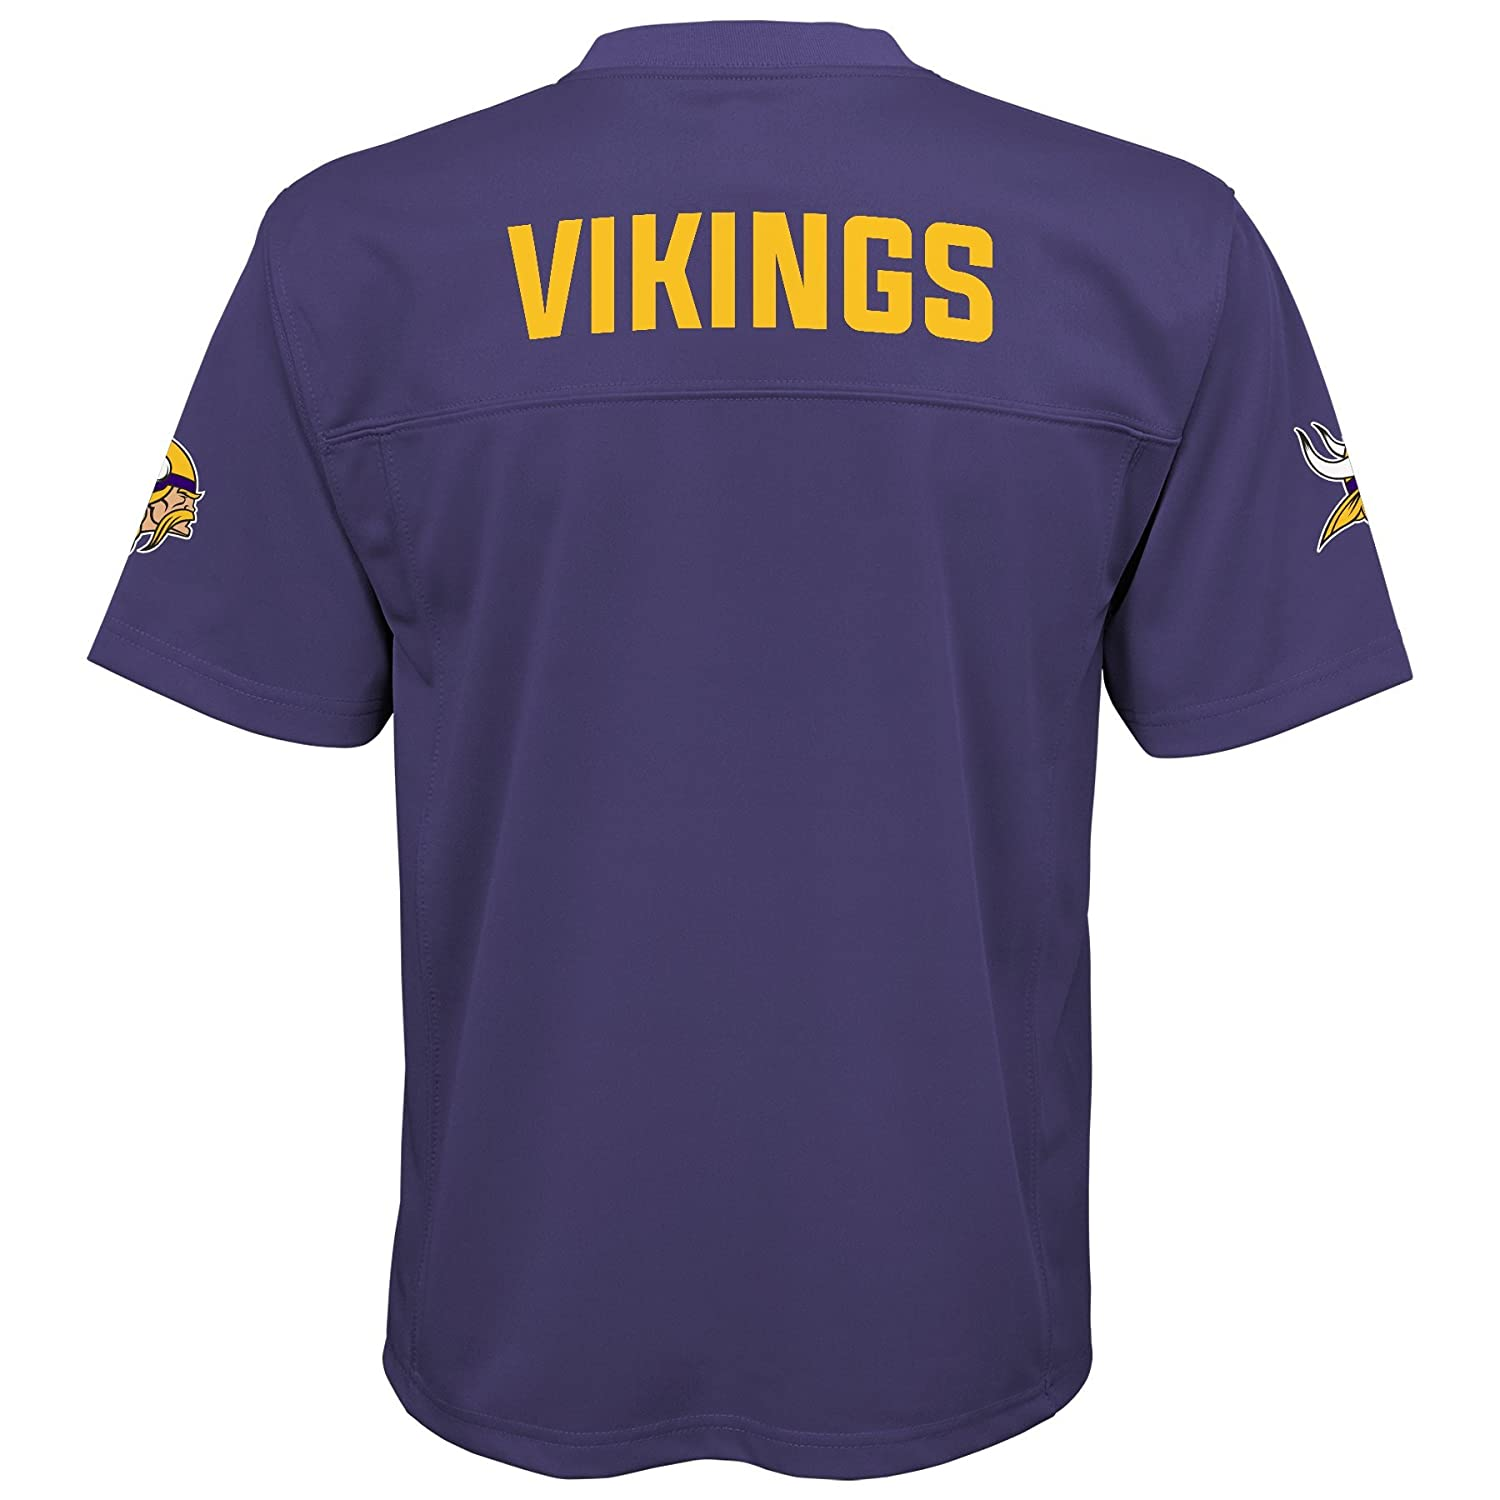 size 40 bd786 cfbe5 Amazon.com : Outerstuff NFL Youth Boys Minnesota Vikings ...